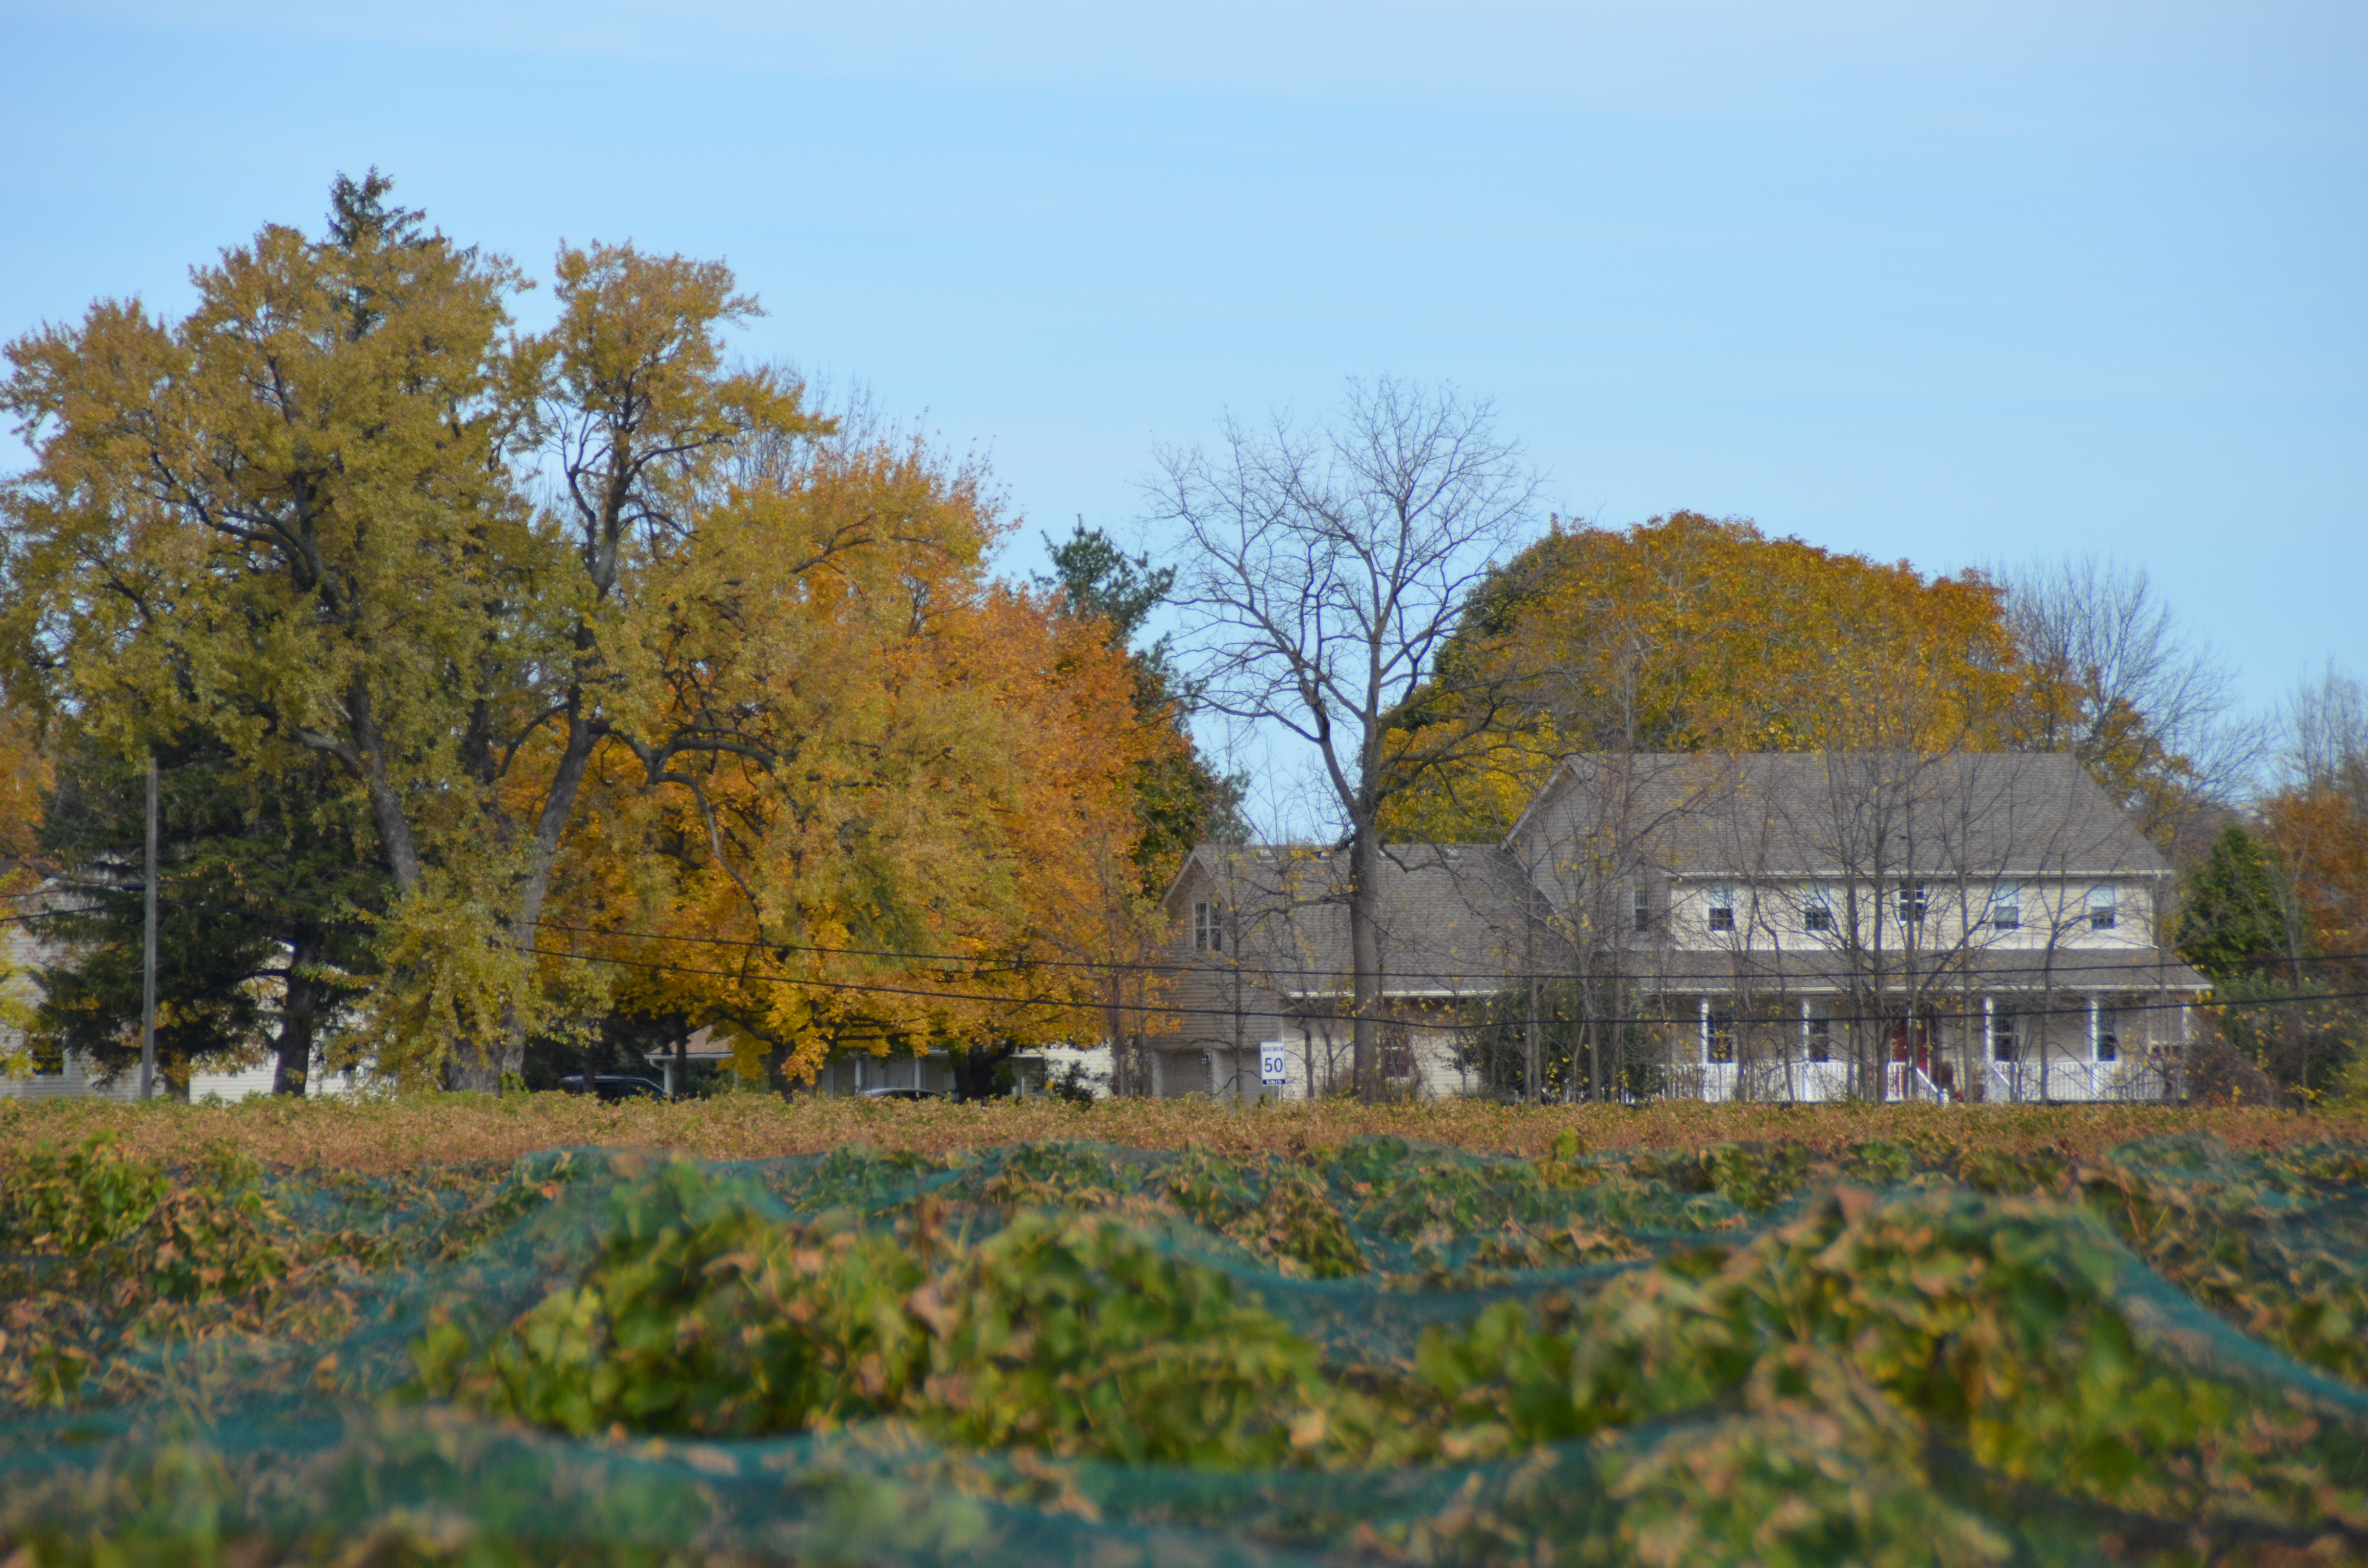 House from across the vineyards